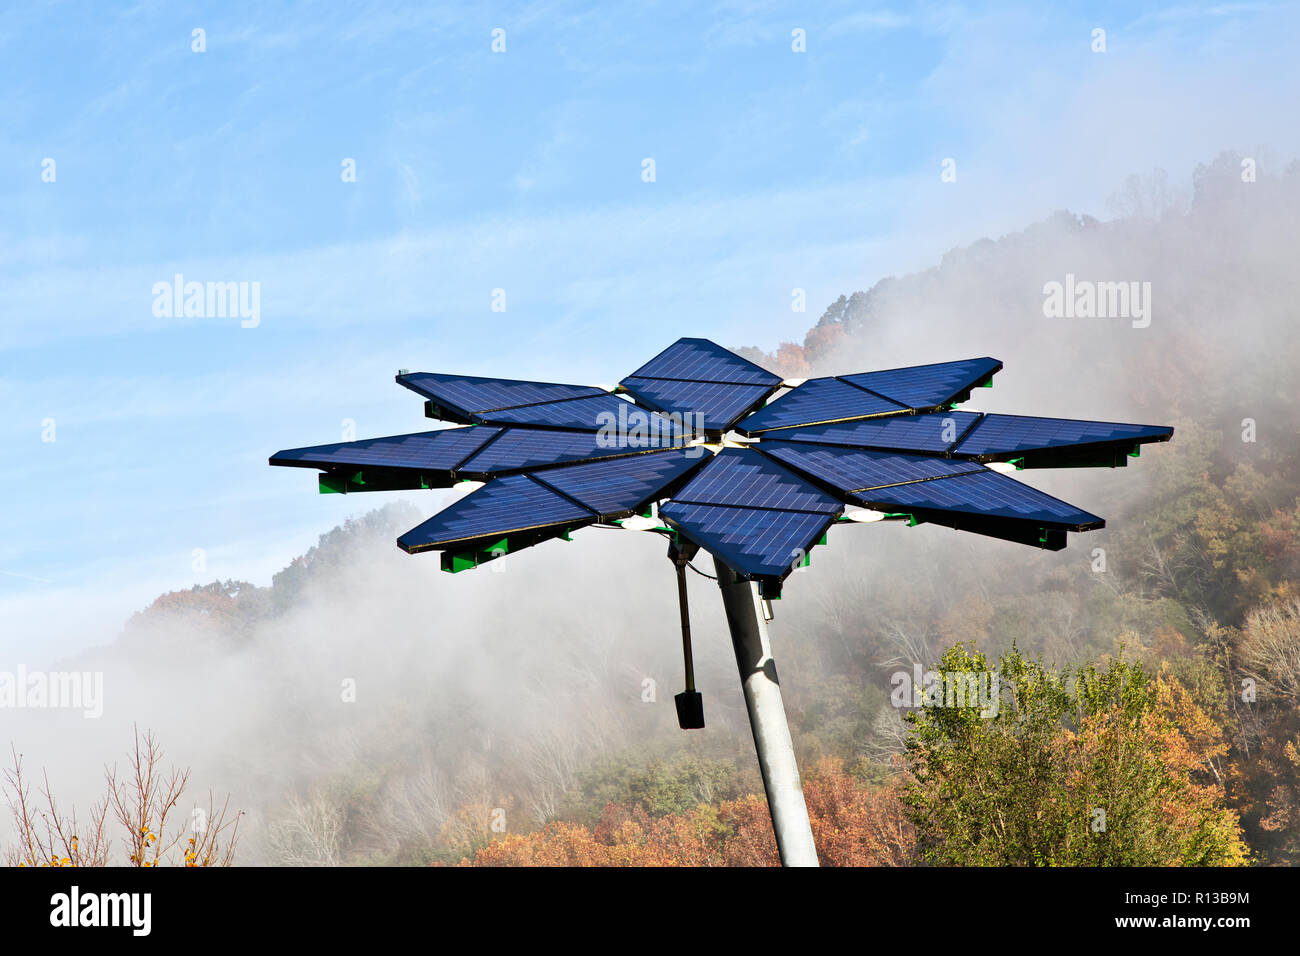 Solar array identified as a  'Solar Photovoltaic Flair',  facilitates electric vehicle charging station, dissipating morning fog. - Stock Image